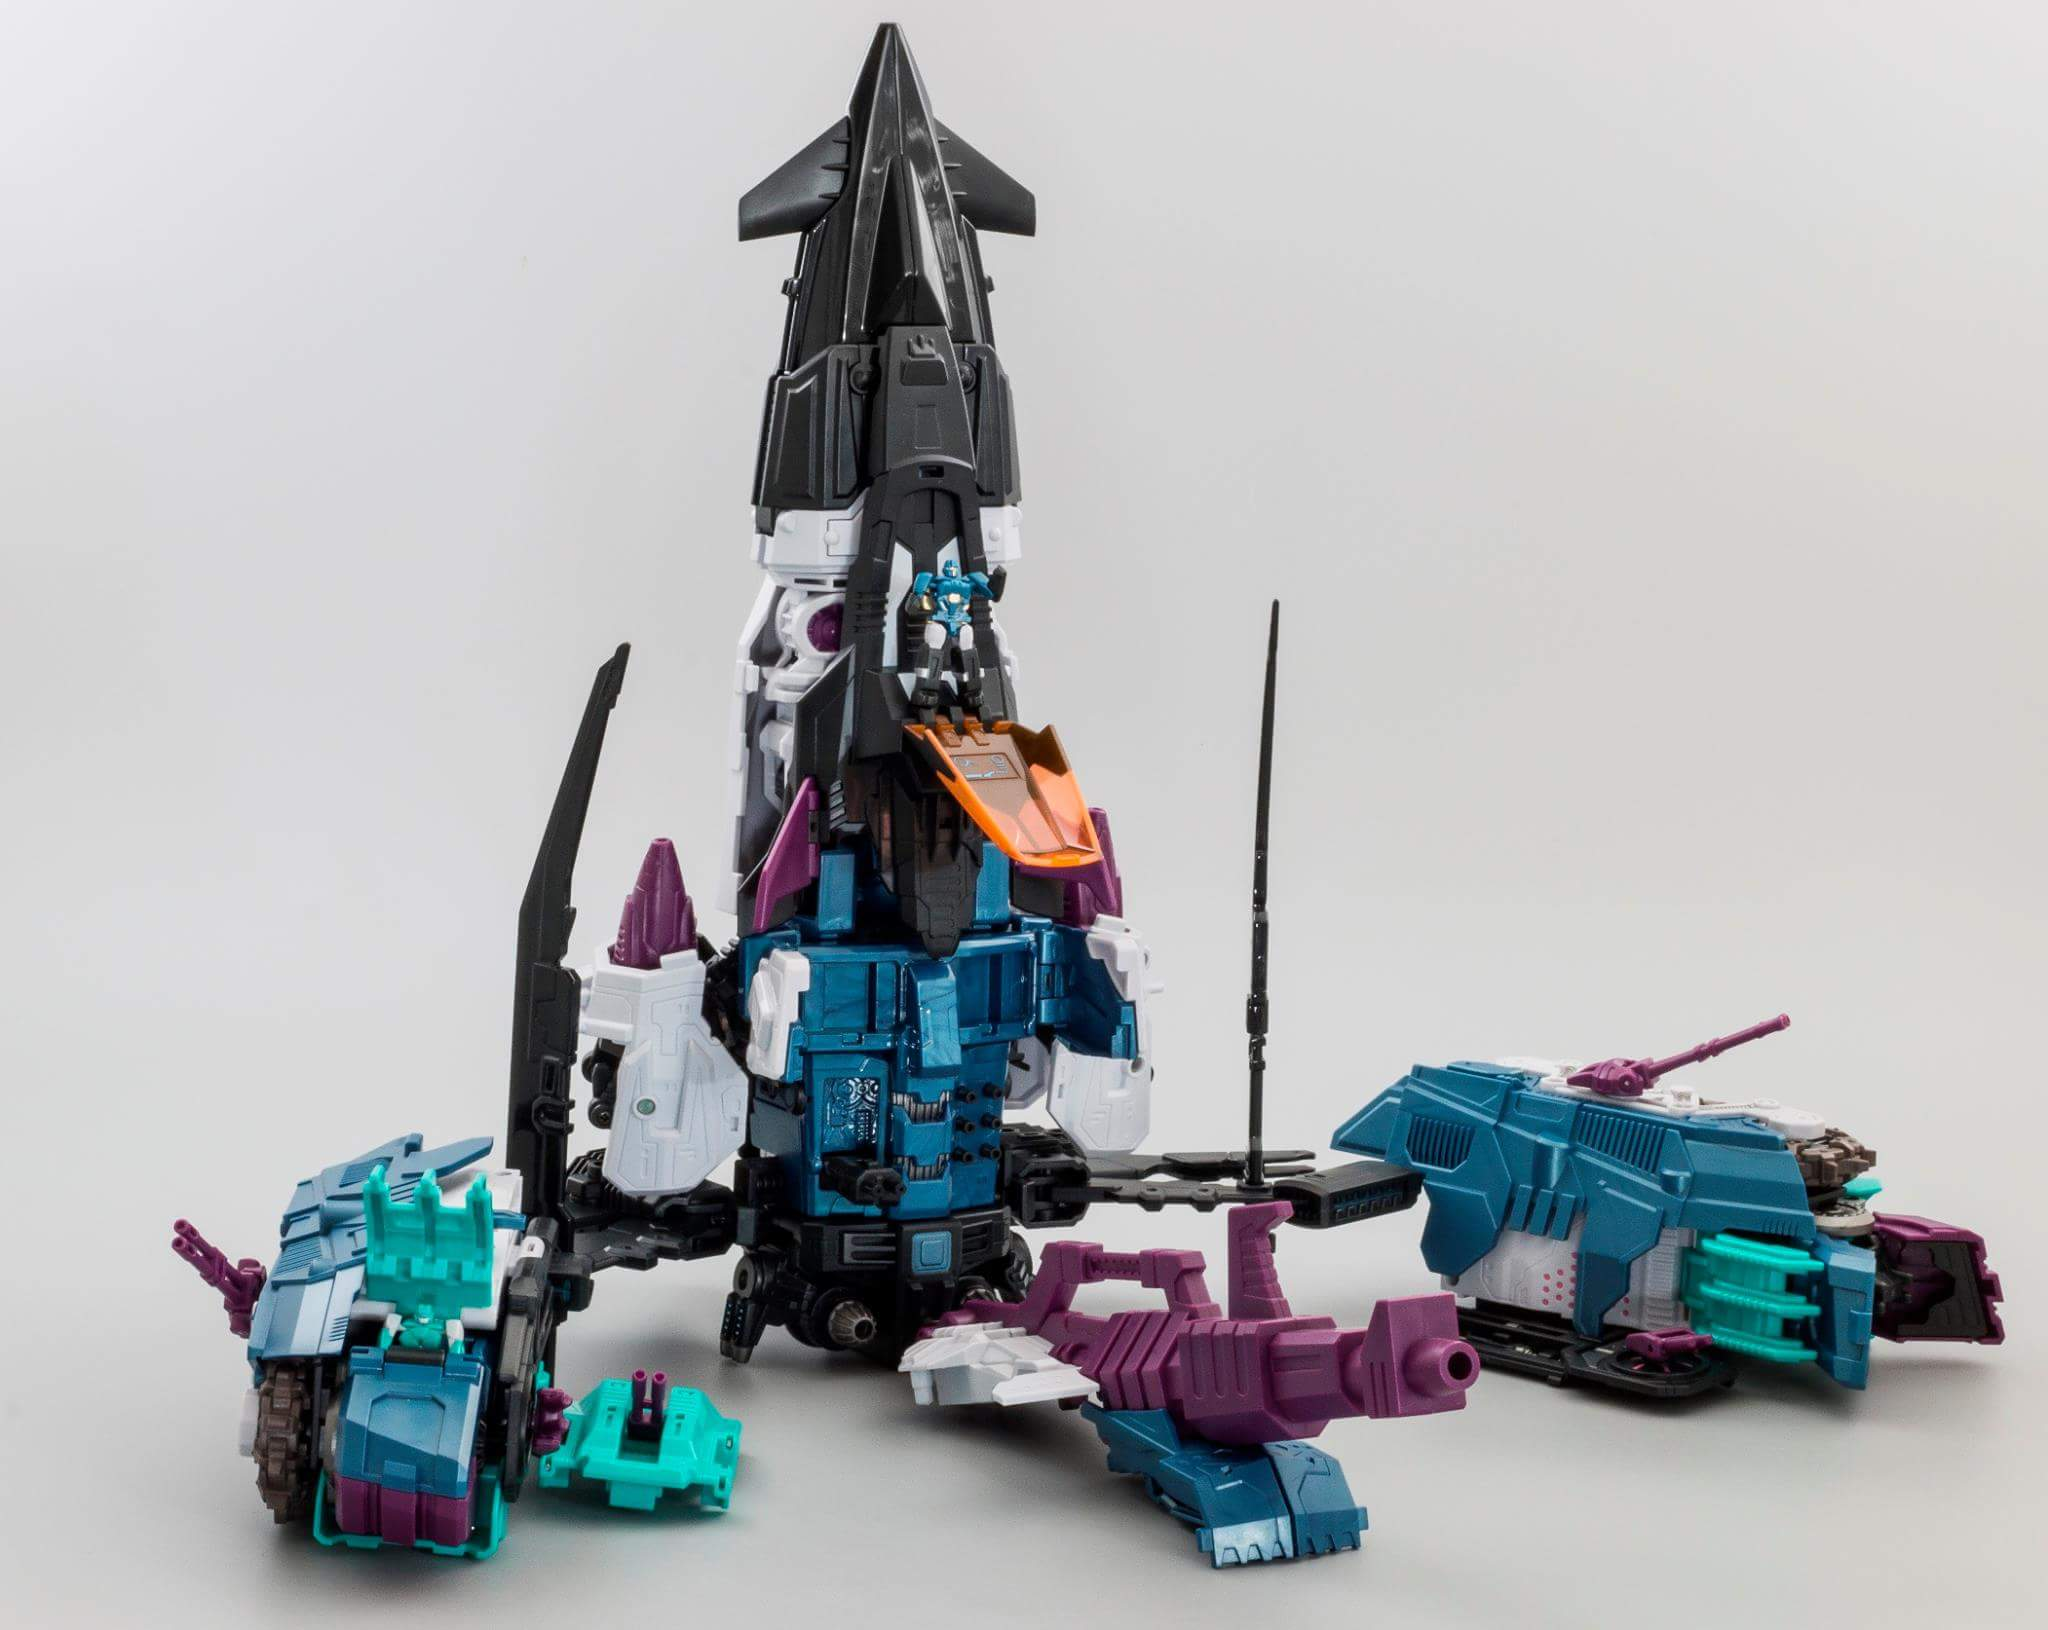 [Mastermind Creations] Produit Tiers - R-17 Carnifex - aka Overlord (TF Masterforce) - Page 3 LTKZcsRS